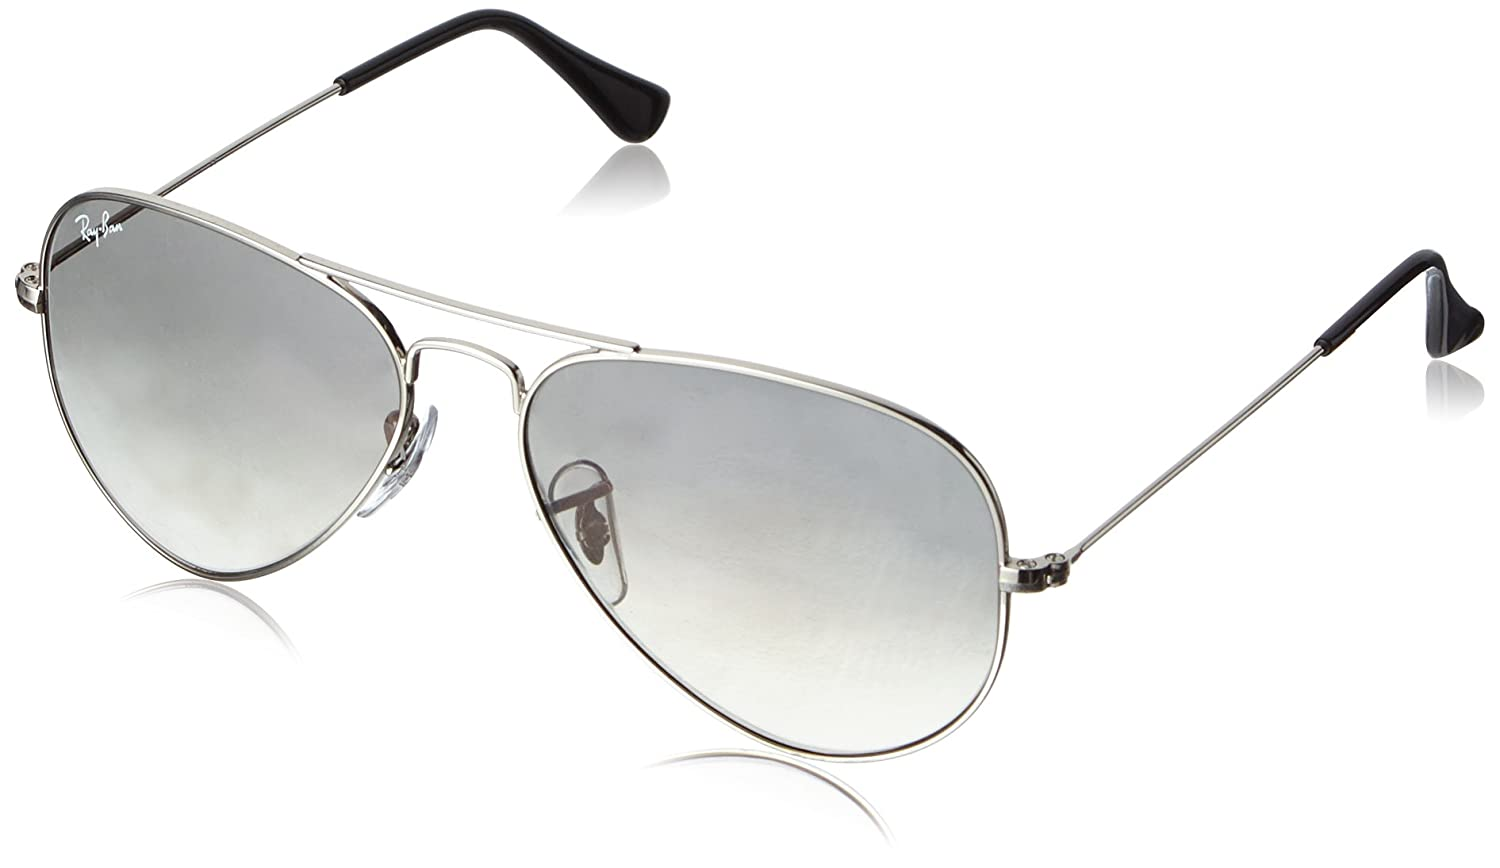 ray ban sunglasses 5thl  Amazoncom: Ray-Ban 0RB3025 Aviator Metal Non-Polarized Sunglasses, Silver/  Crystal Grey Gradient, 55mm: Ray-Ban: Clothing